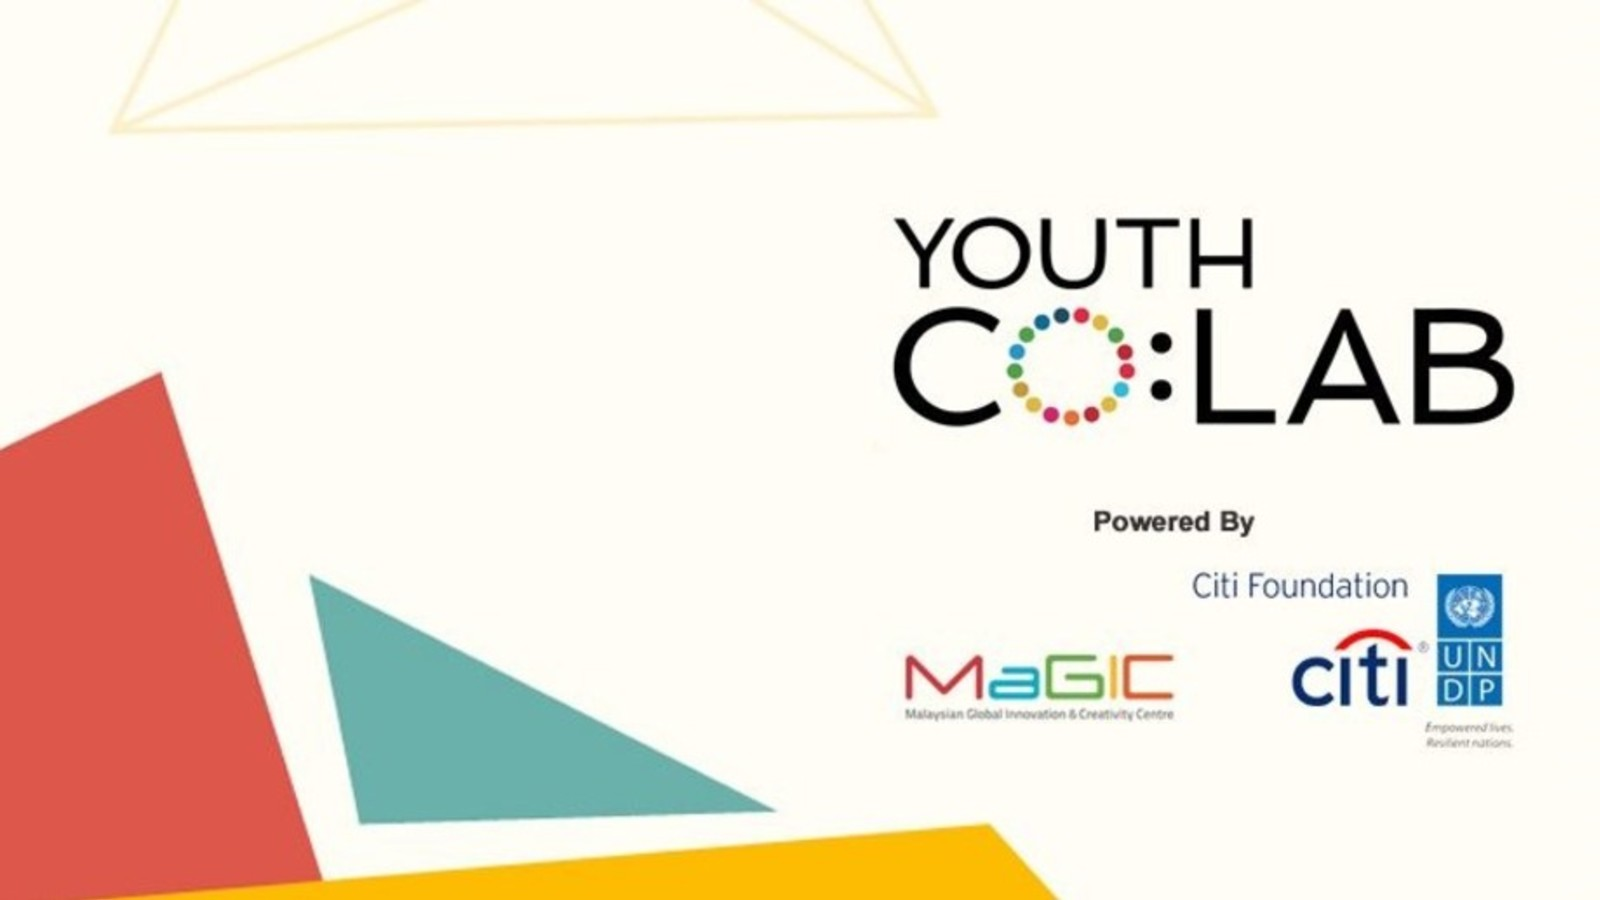 High quality edited undp youth colab launch 1 1280x545 1280x460